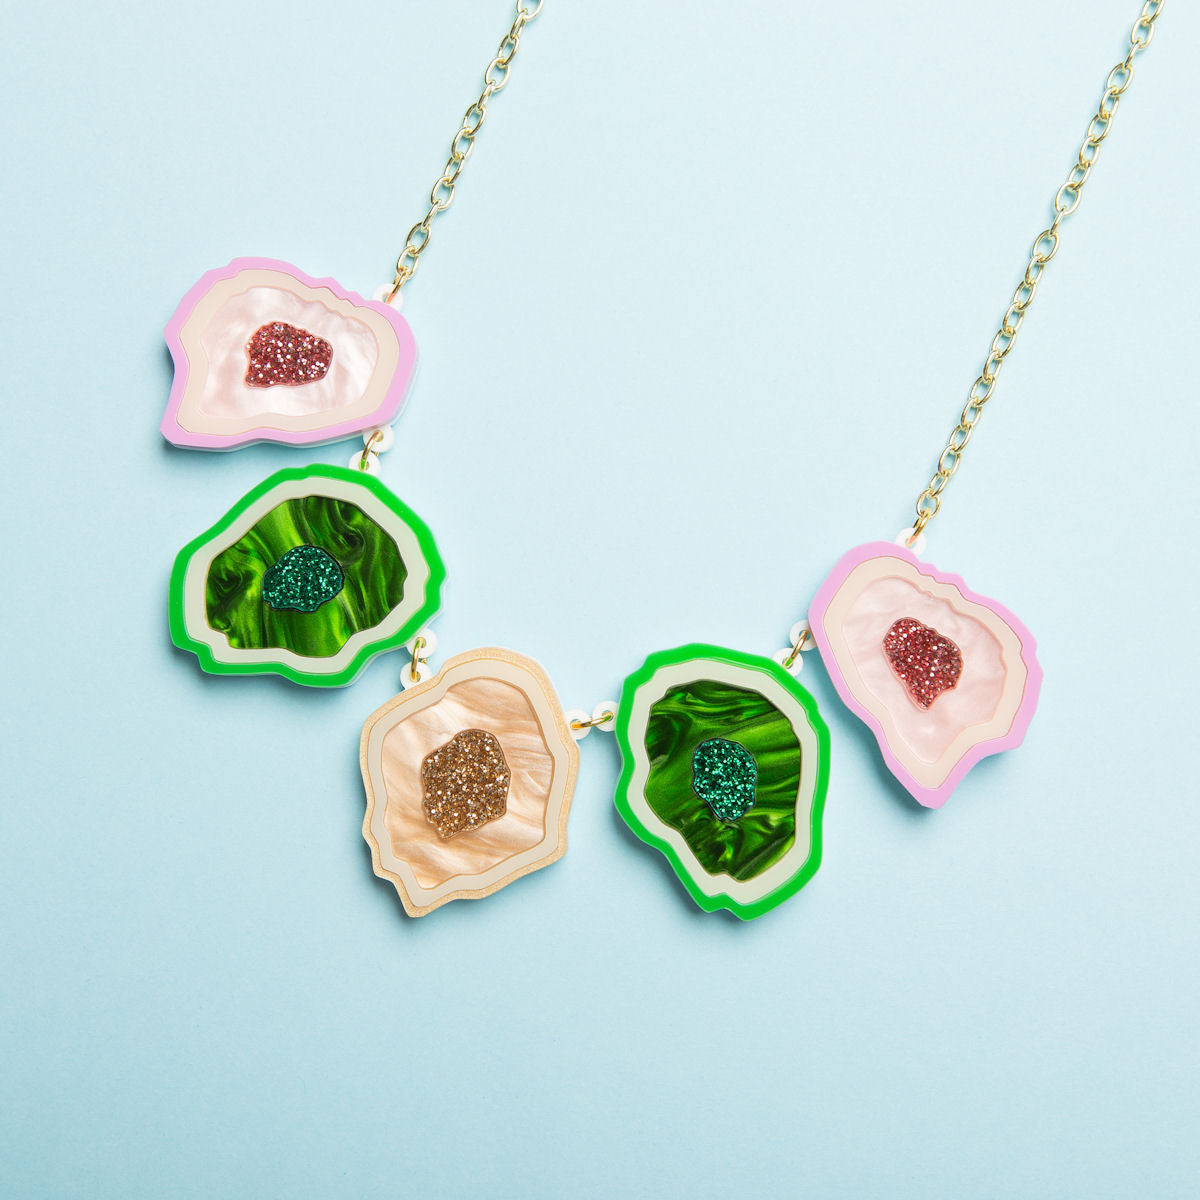 Sugar & Vice Agate Necklace social media